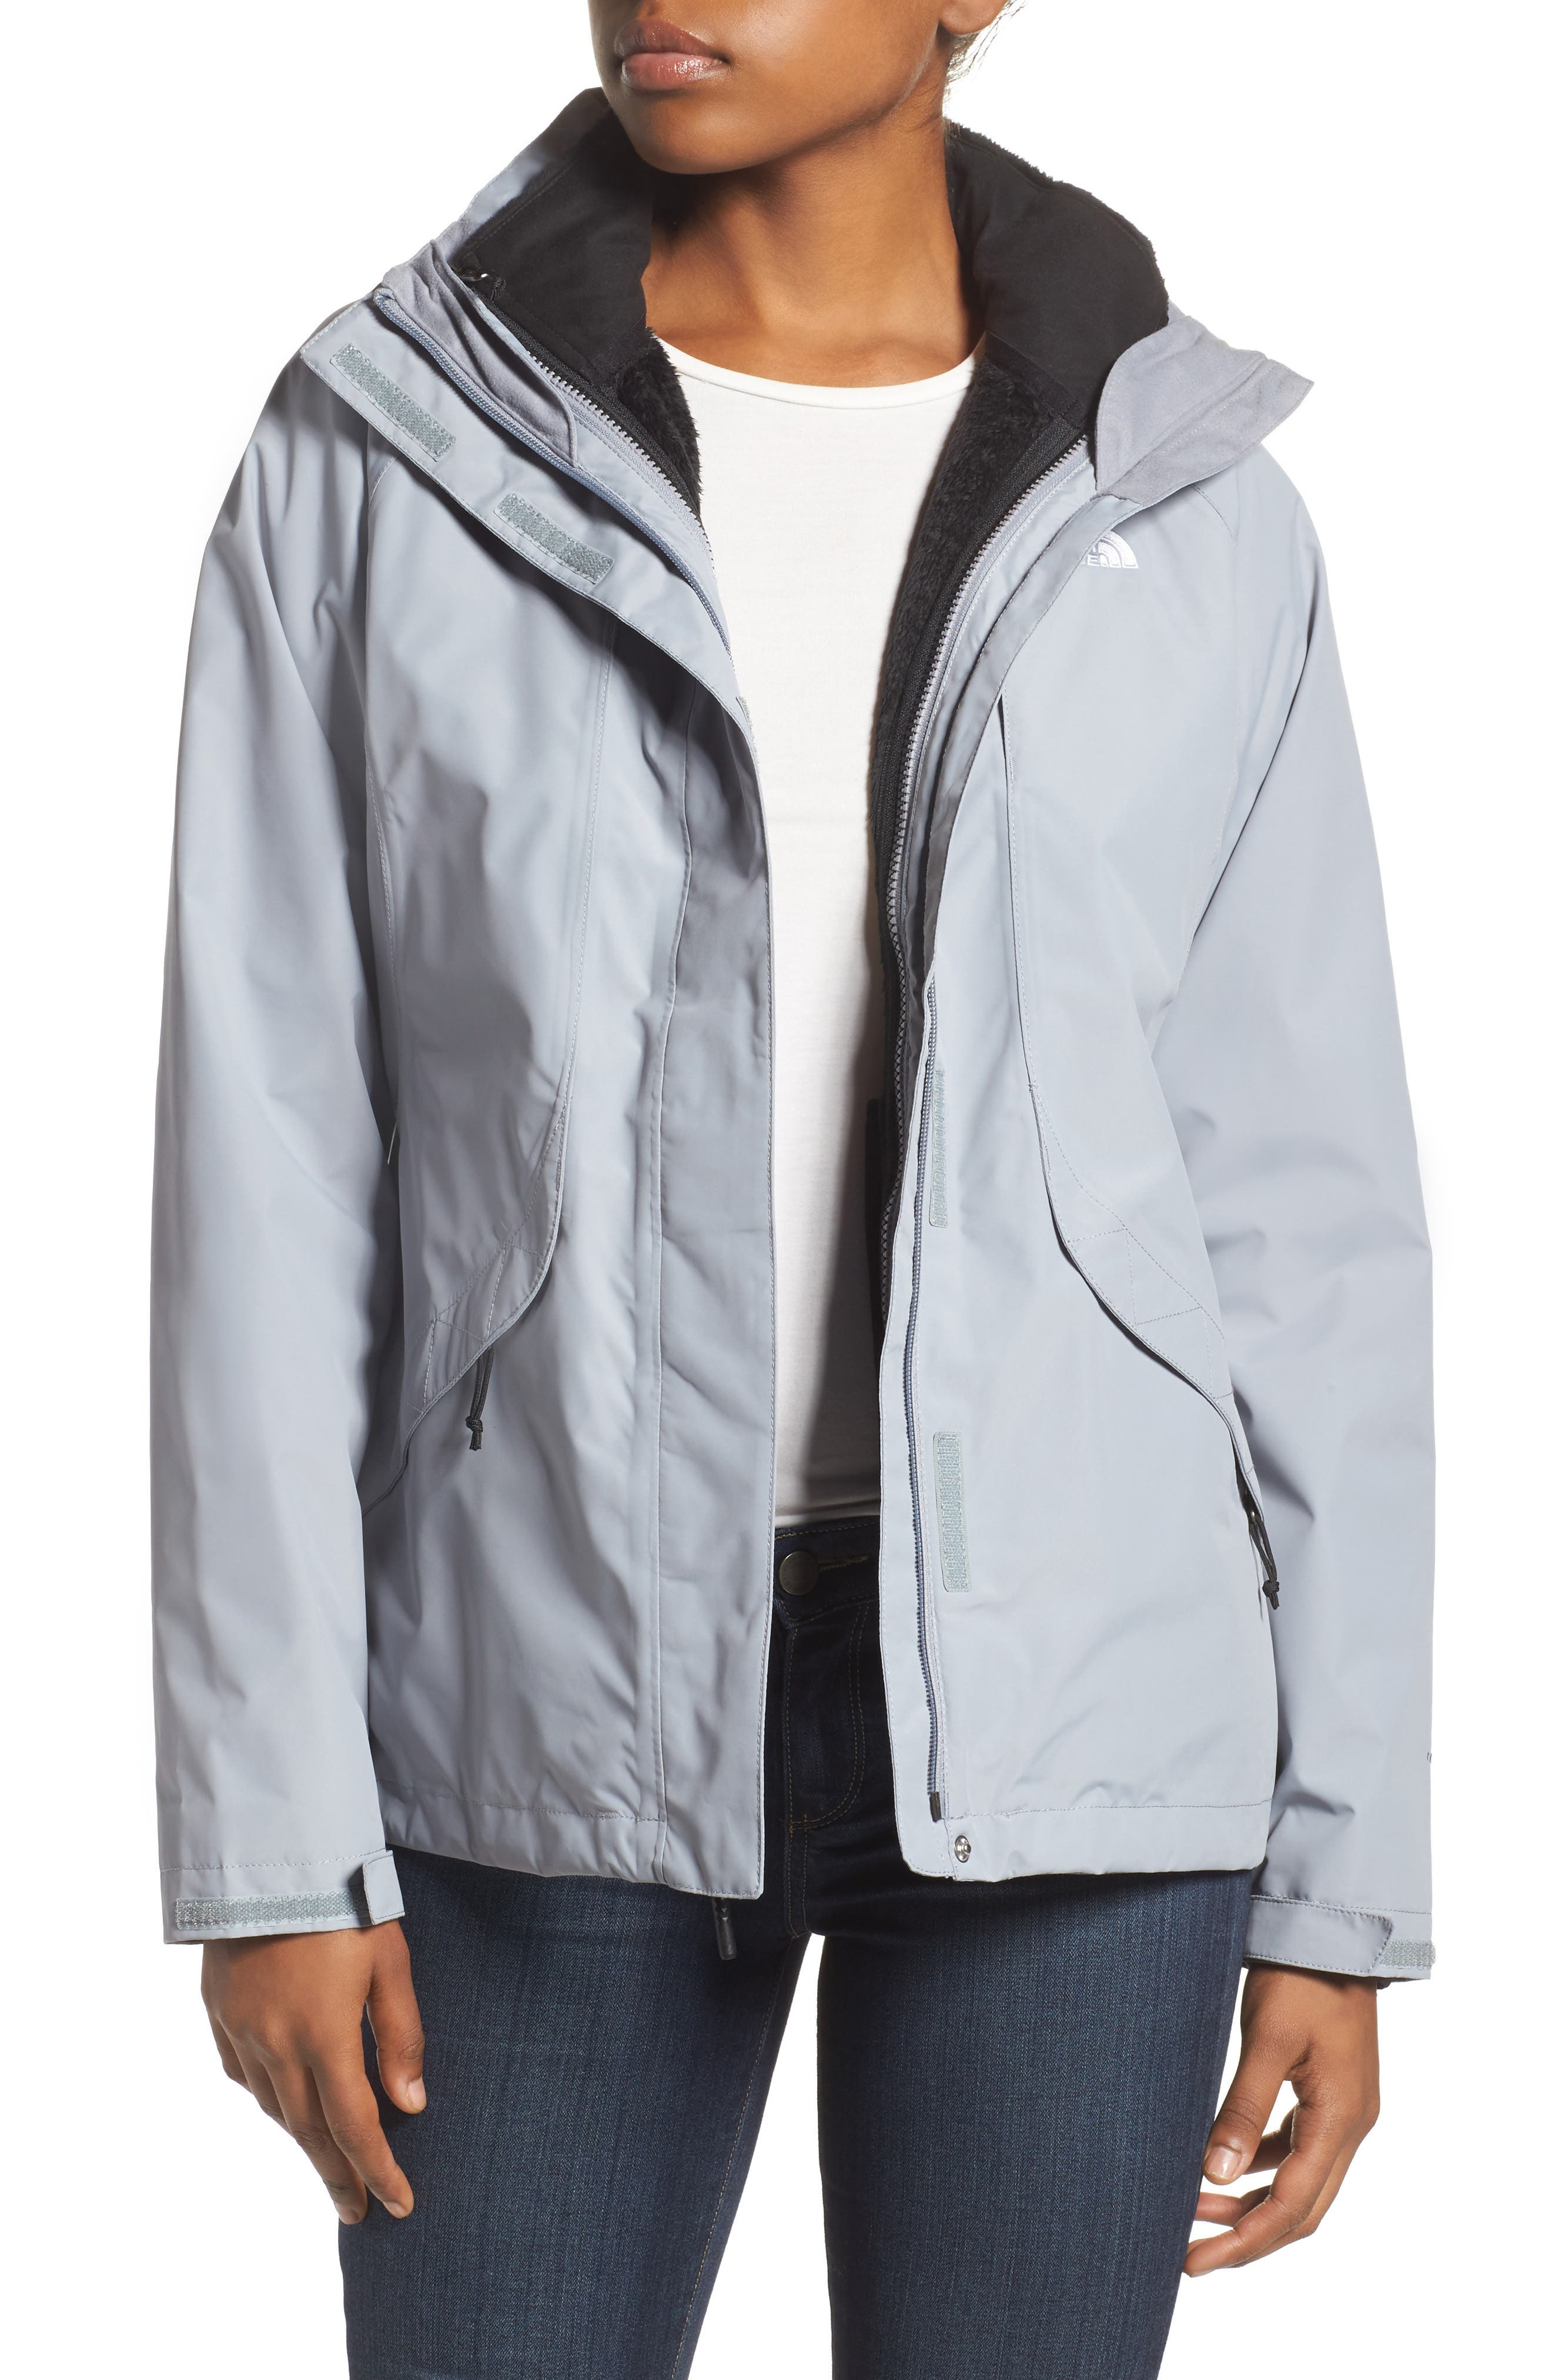 Boundary Triclimate<sup>®</sup> 3-in-1 Jacket,                             Main thumbnail 1, color,                             030